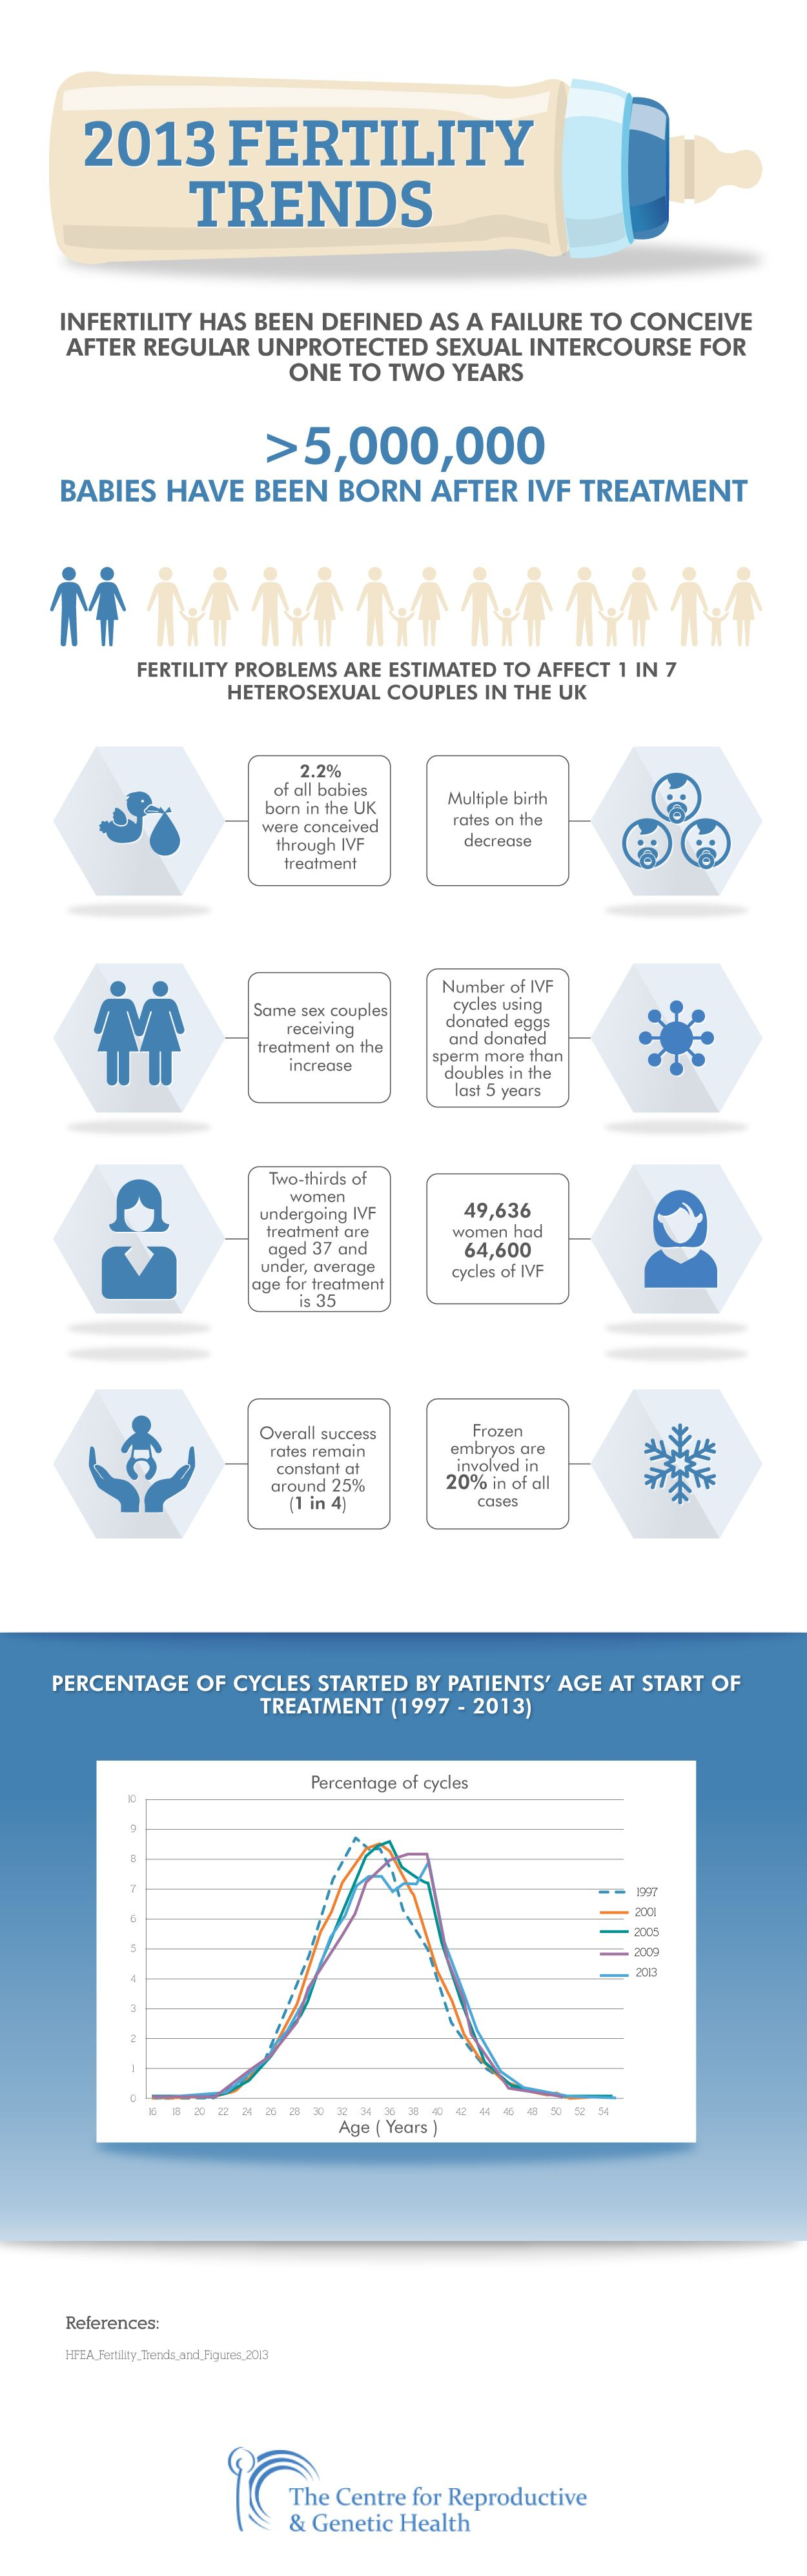 Fertility Trends 2013 Infographic